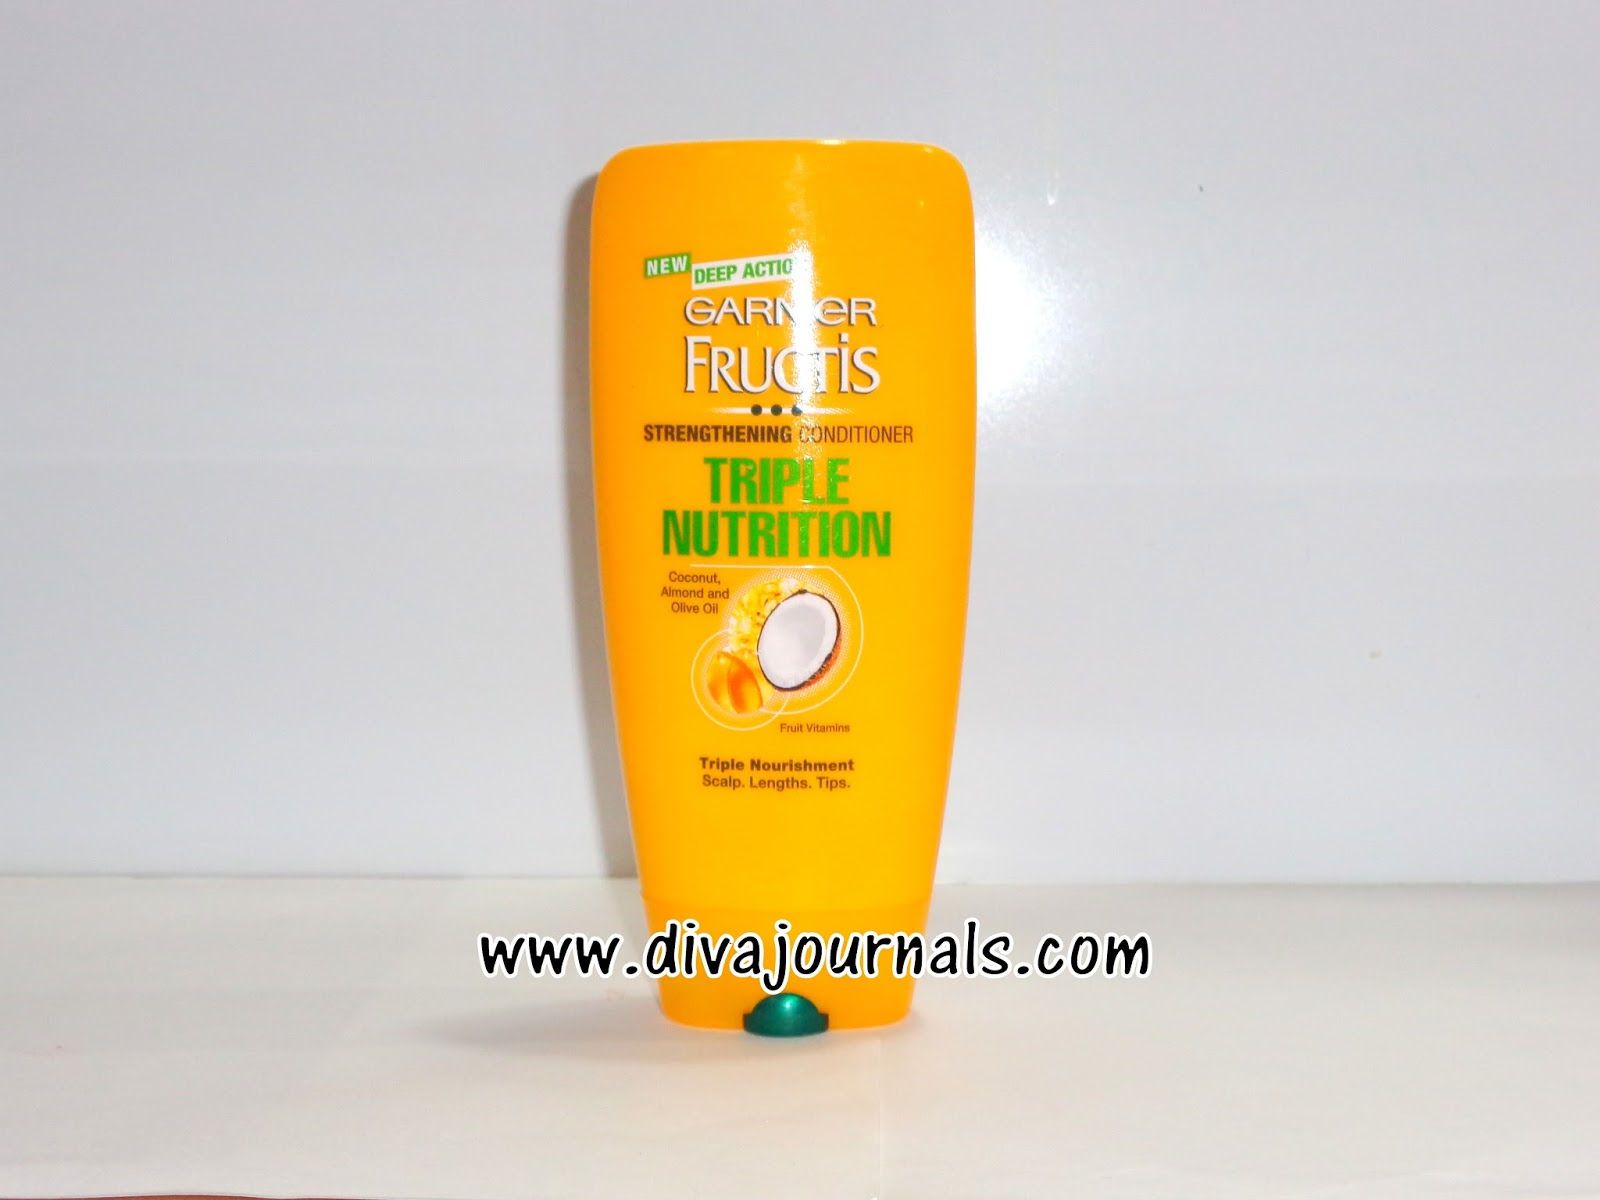 Garnier Fructis Triple Nutrition Shampoo & Conditioner Review